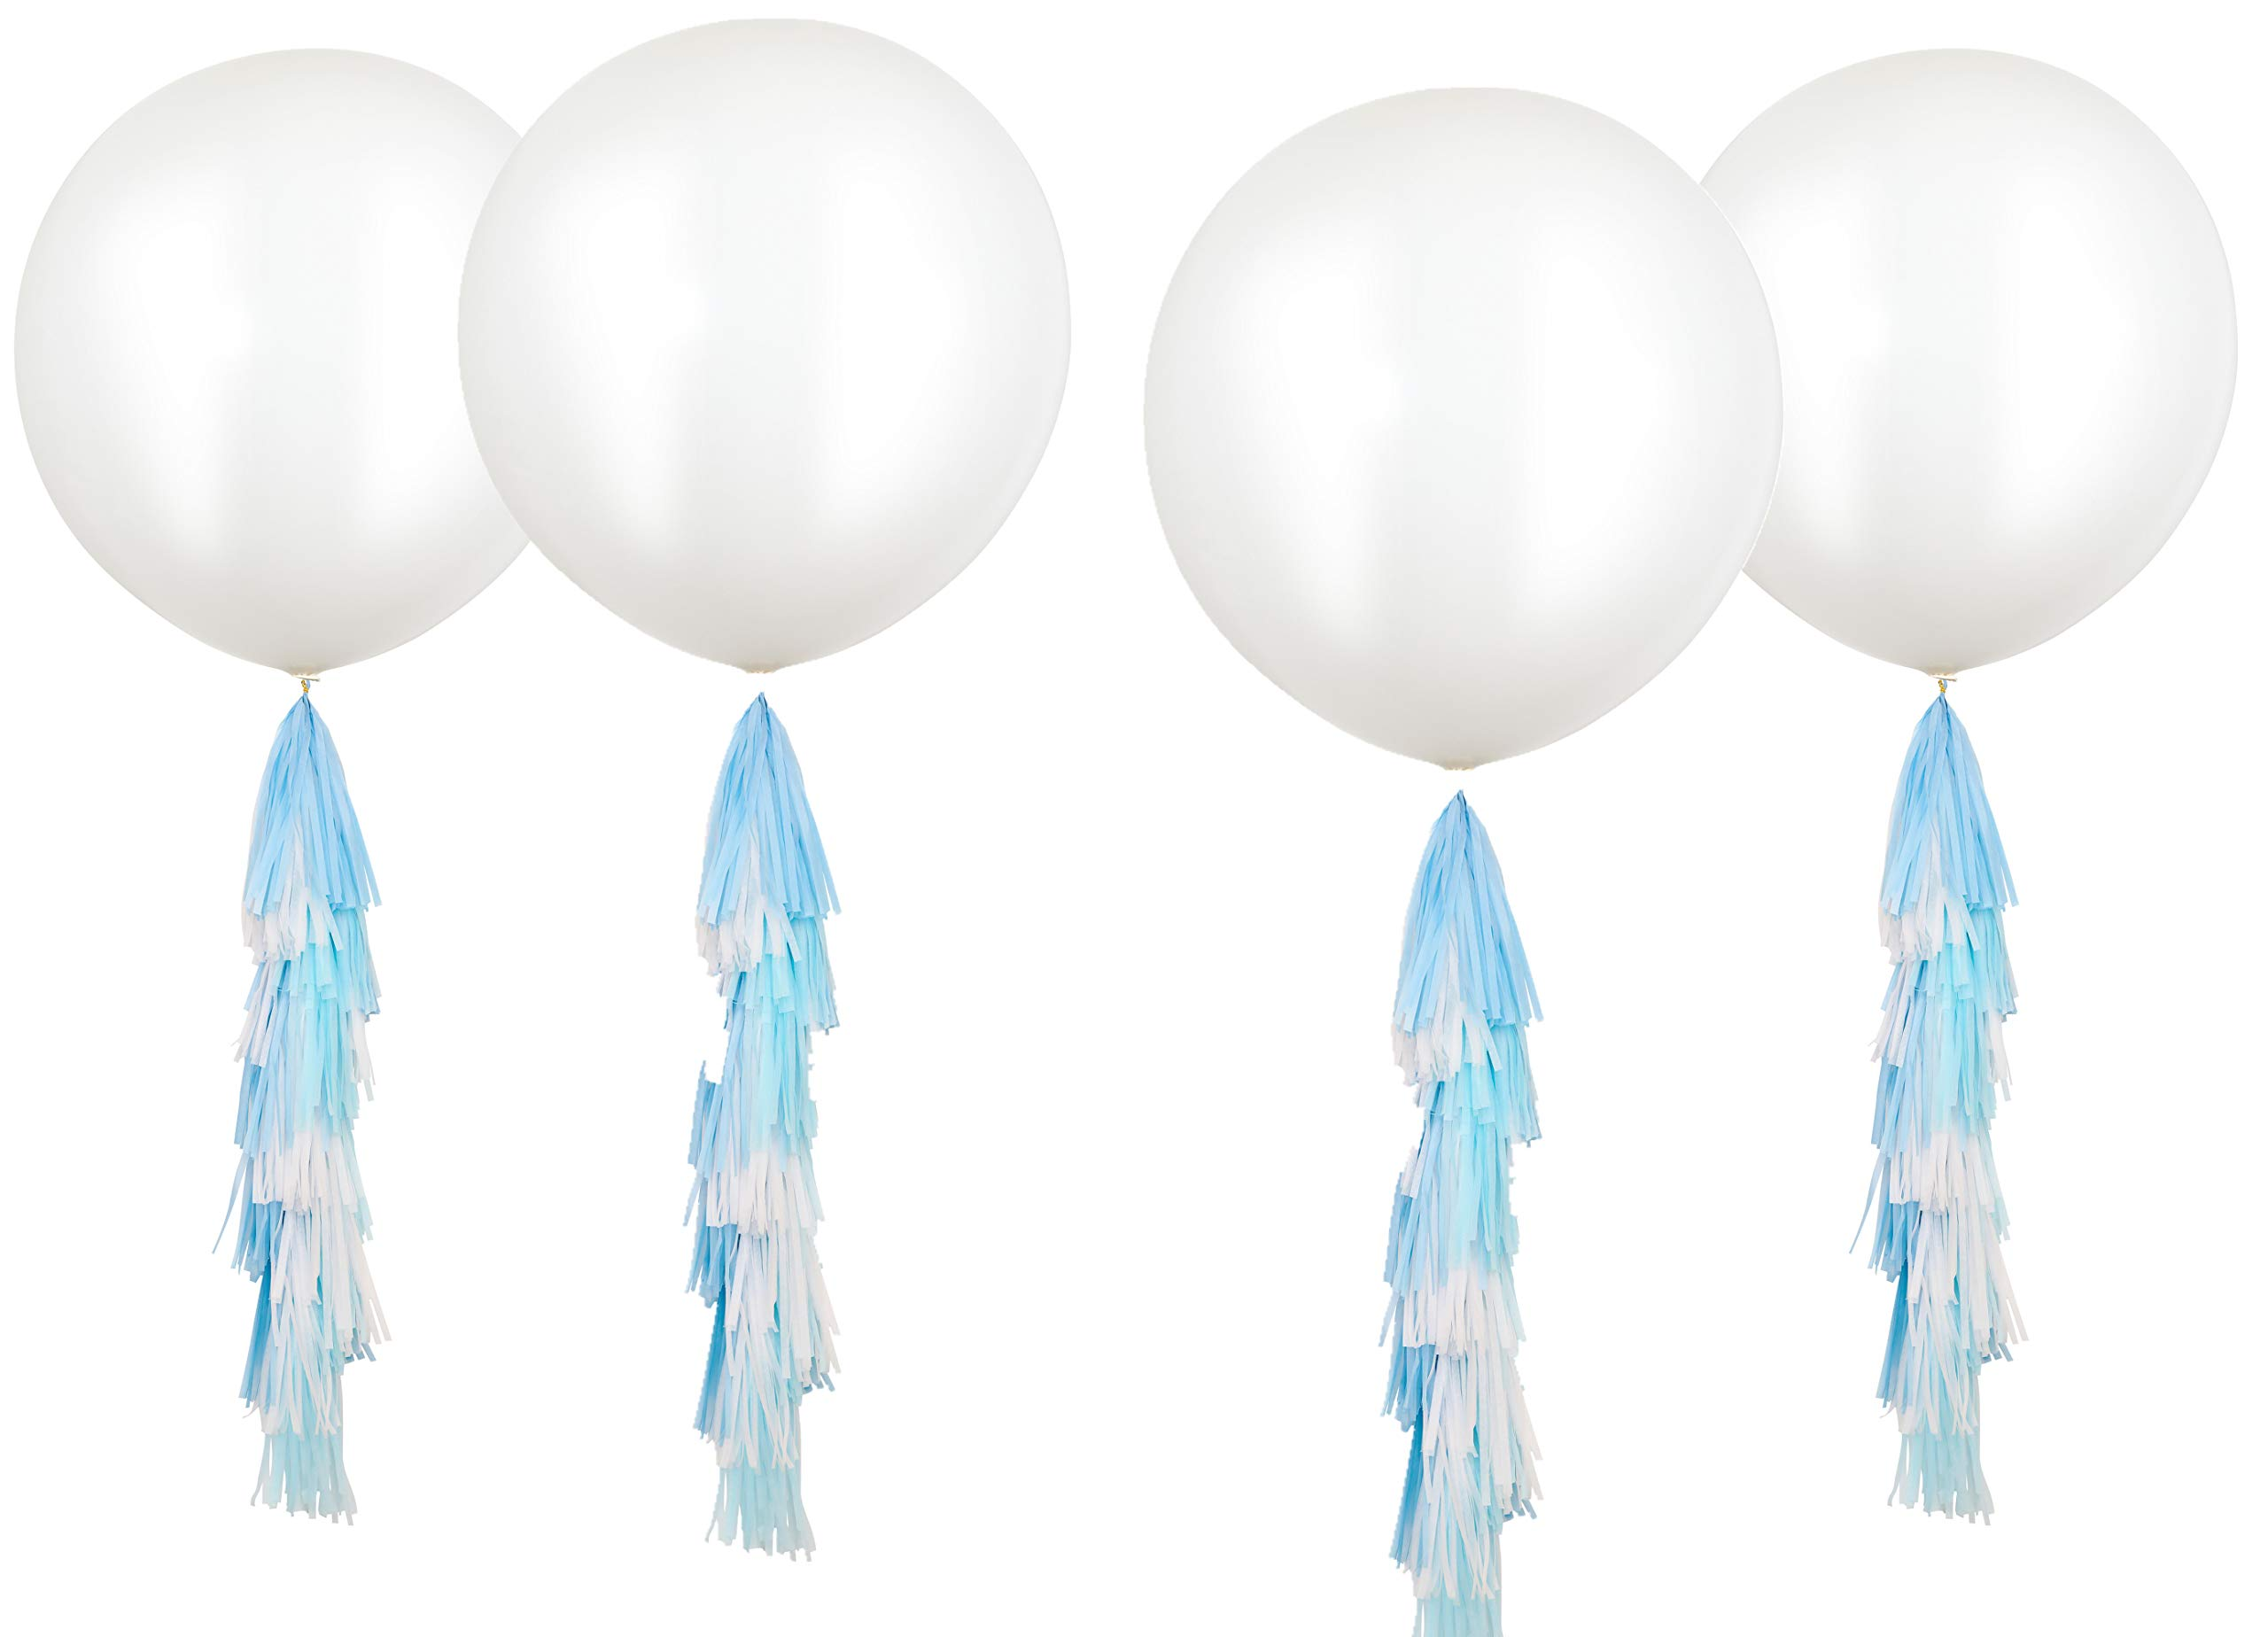 Fonder Mols 4pcs 36'' Giant White Round Latex Party Balloons with Baby Blue Turquoise White Paper Tassels Blue Party Hanging Decoration